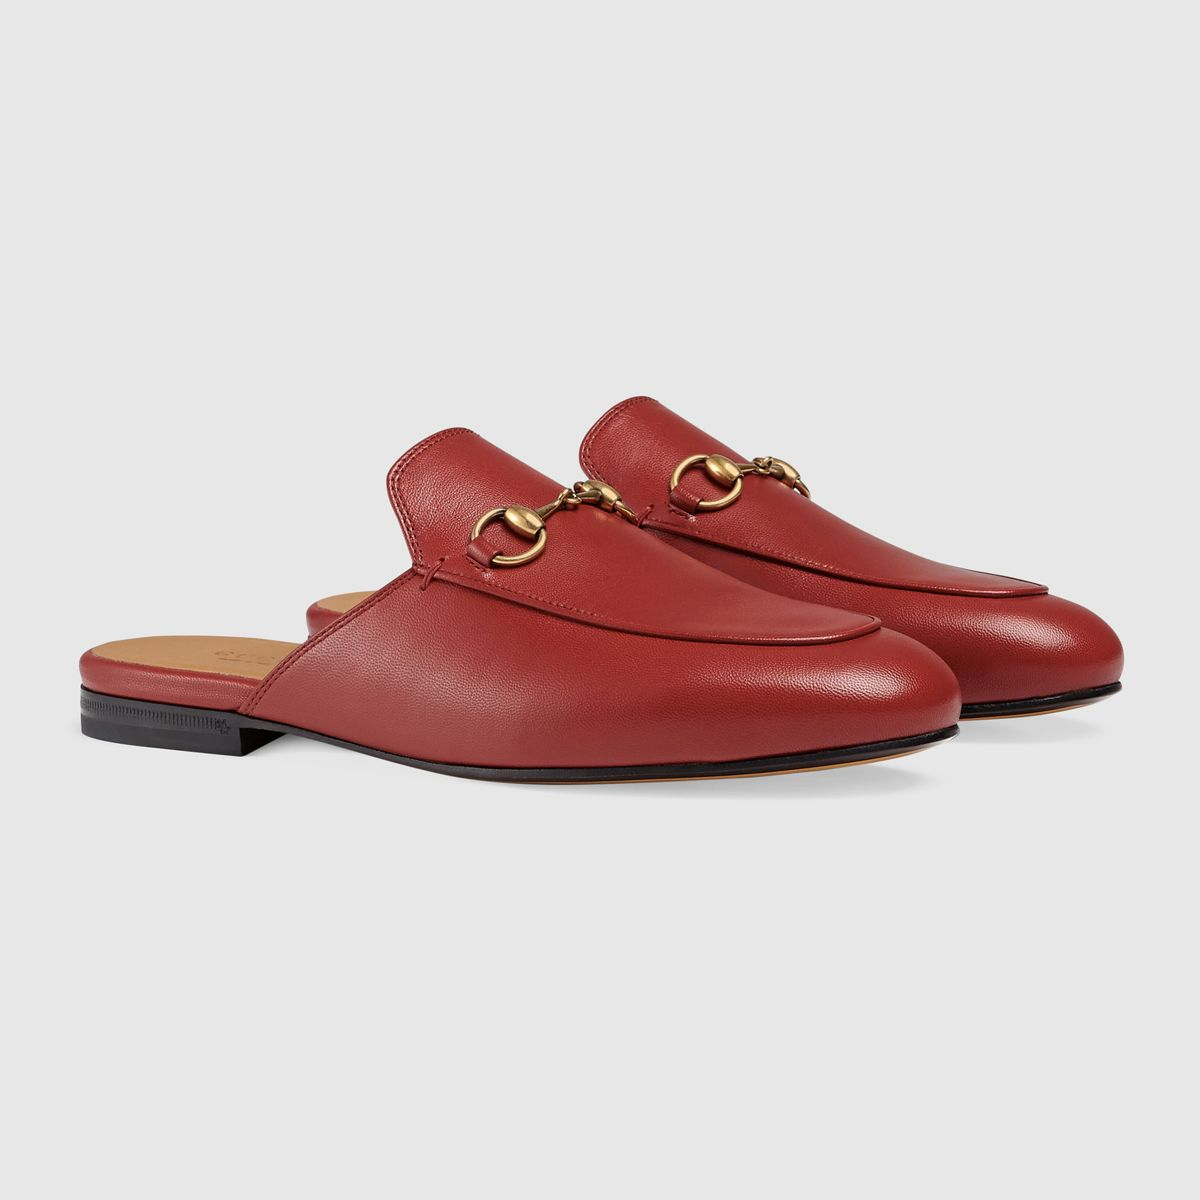 undefined 265463 1534504974972 product.1200x1200uc - 10 Extra Inexpensive Methods to Add Gucci Into Your Wardrobe